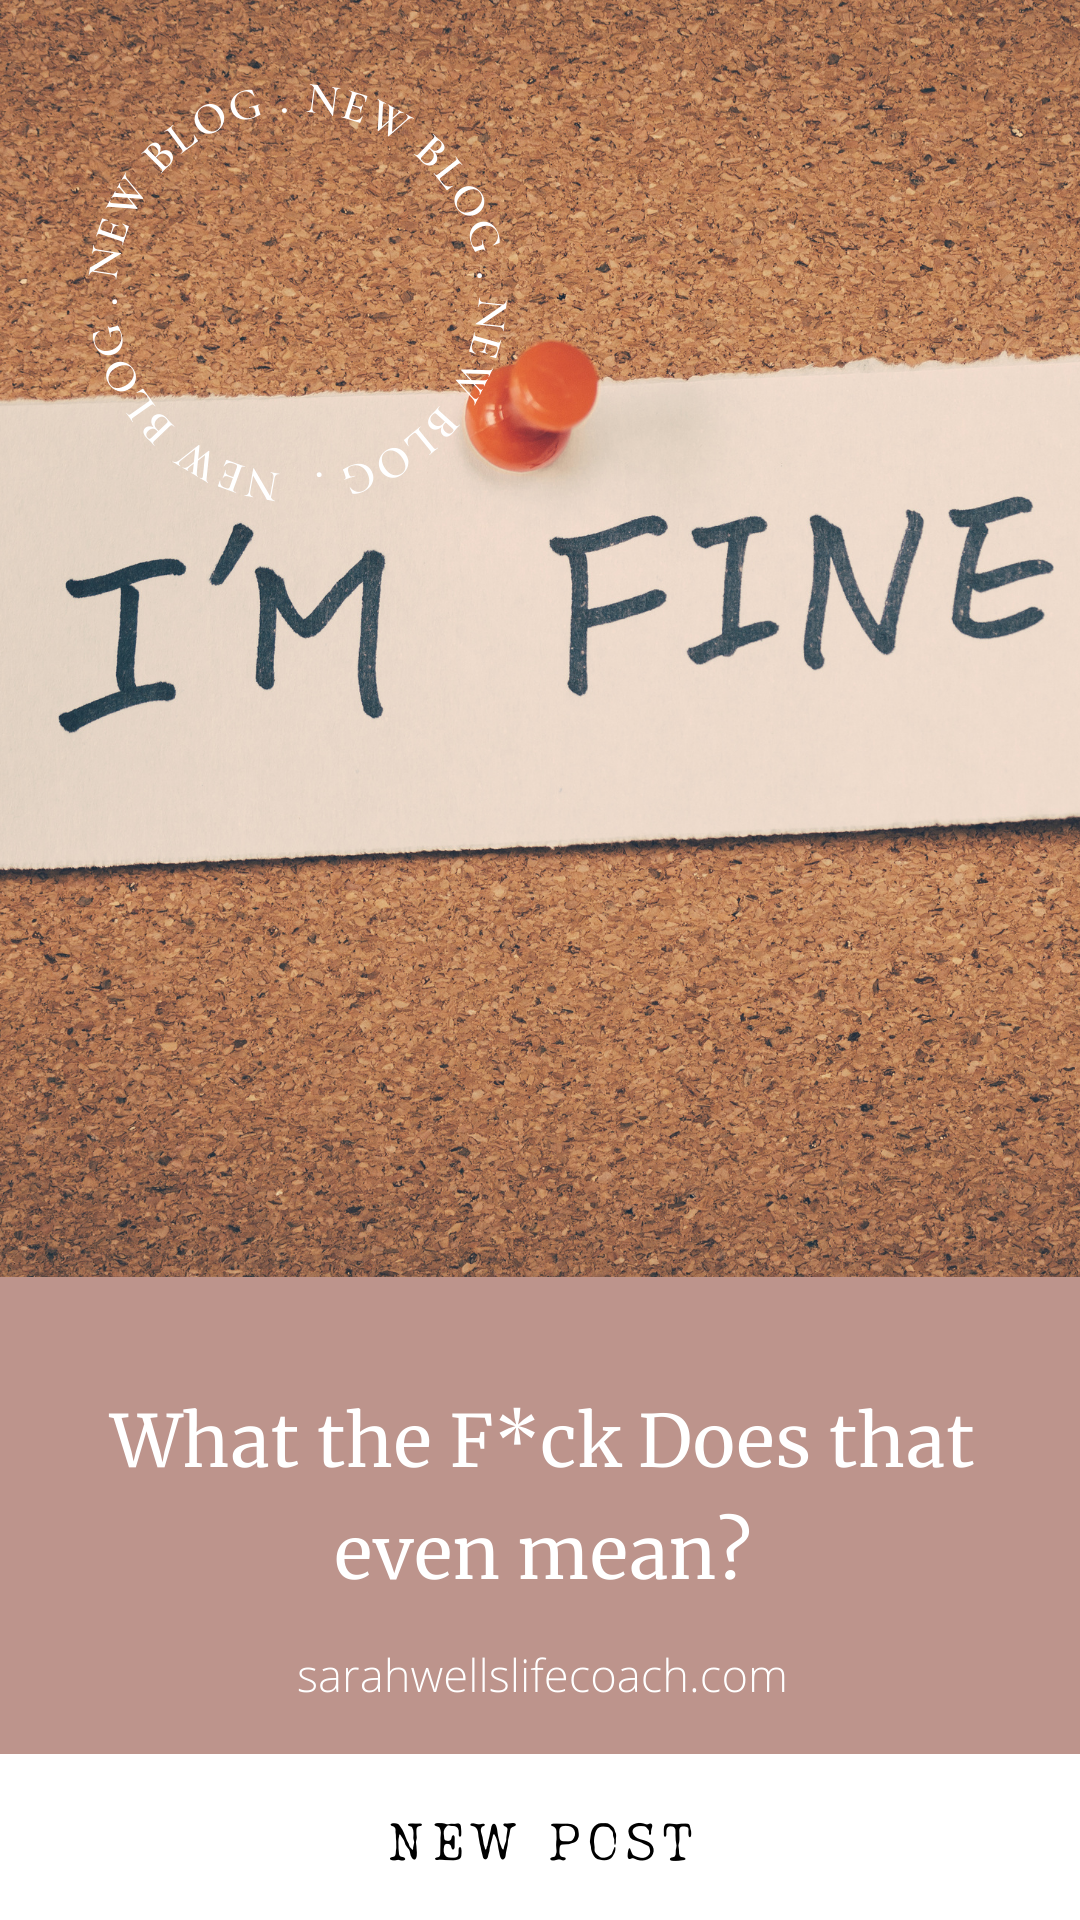 I'm fine written on a piece of paper and pinned to a notice board